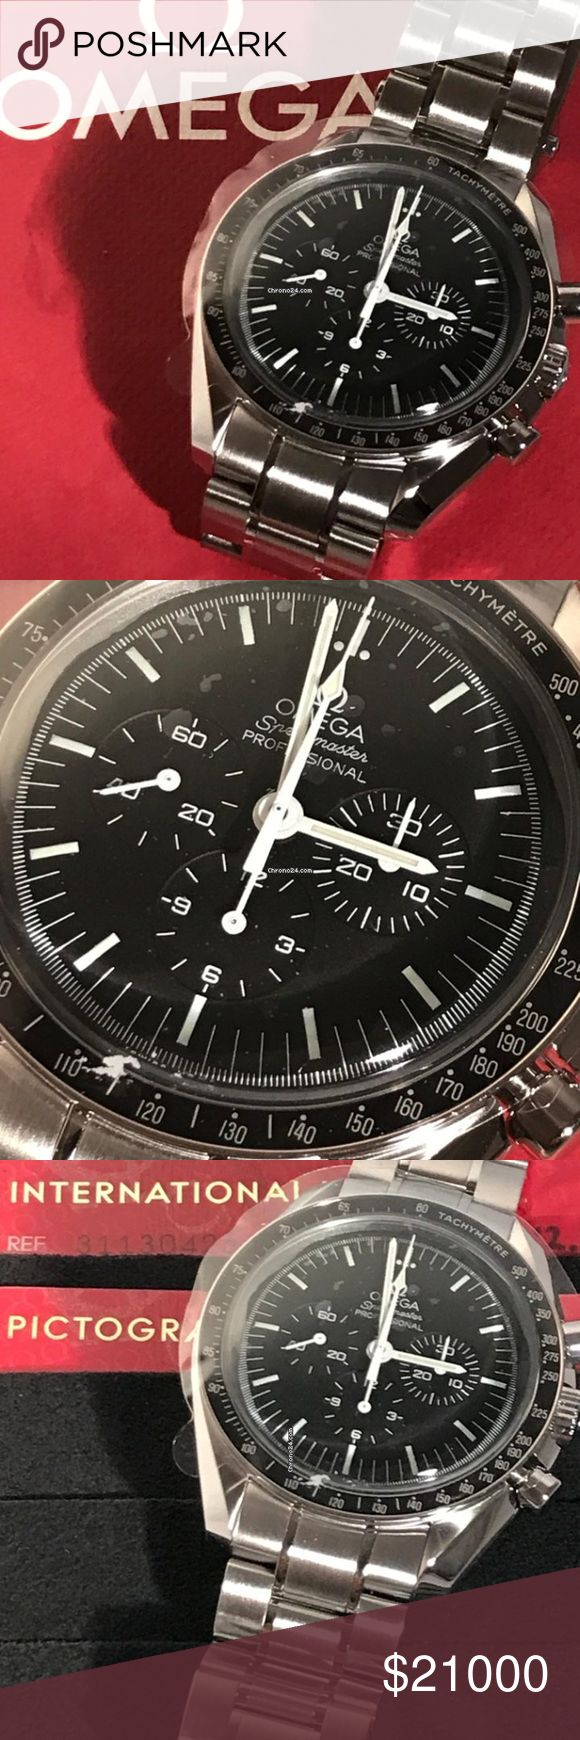 Omega Speedmaster Professional Moonwatch Condition:	New Scope of delivery:	New, With box, With papers Availability:	Ready to ship in 6-10 days Delivery time: 2-3 weeks up to 6 weeks  BASIC INFO Brand	Omega Model	Speedmaster Professional Moonwatch Ref. No.	311.30.42.30.01.005 Chrono24-ID	40ptx2 Movement	Manual winding Case material	Steel Bracelet material	Steel Year	2018 Condition	0 (unworn)  	New  	With box  	With papers Gender	Men's watch/Unisex Location	, Florida, USA Availability	Ready to…